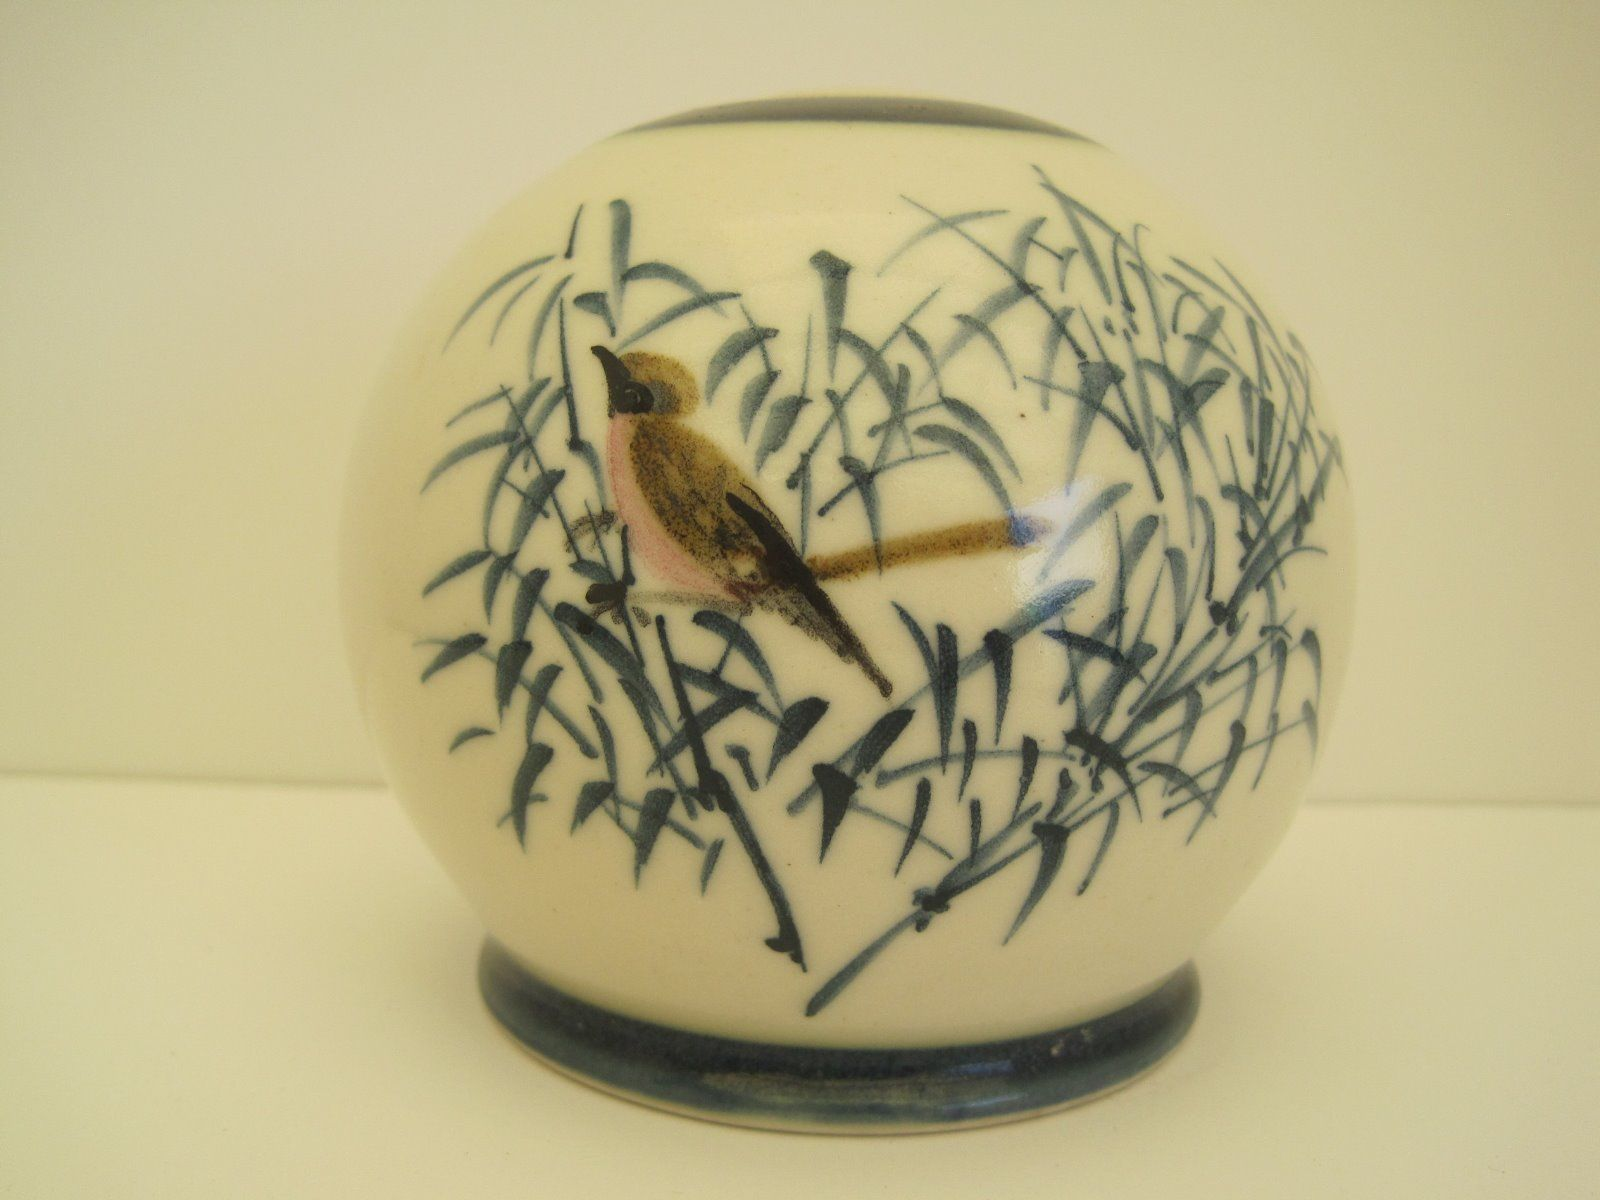 http://www.ebay.com/itm/Vintage-signed-ceramic-vase-candle-holder-with-bird-and-bamboo-design-/111753590040?